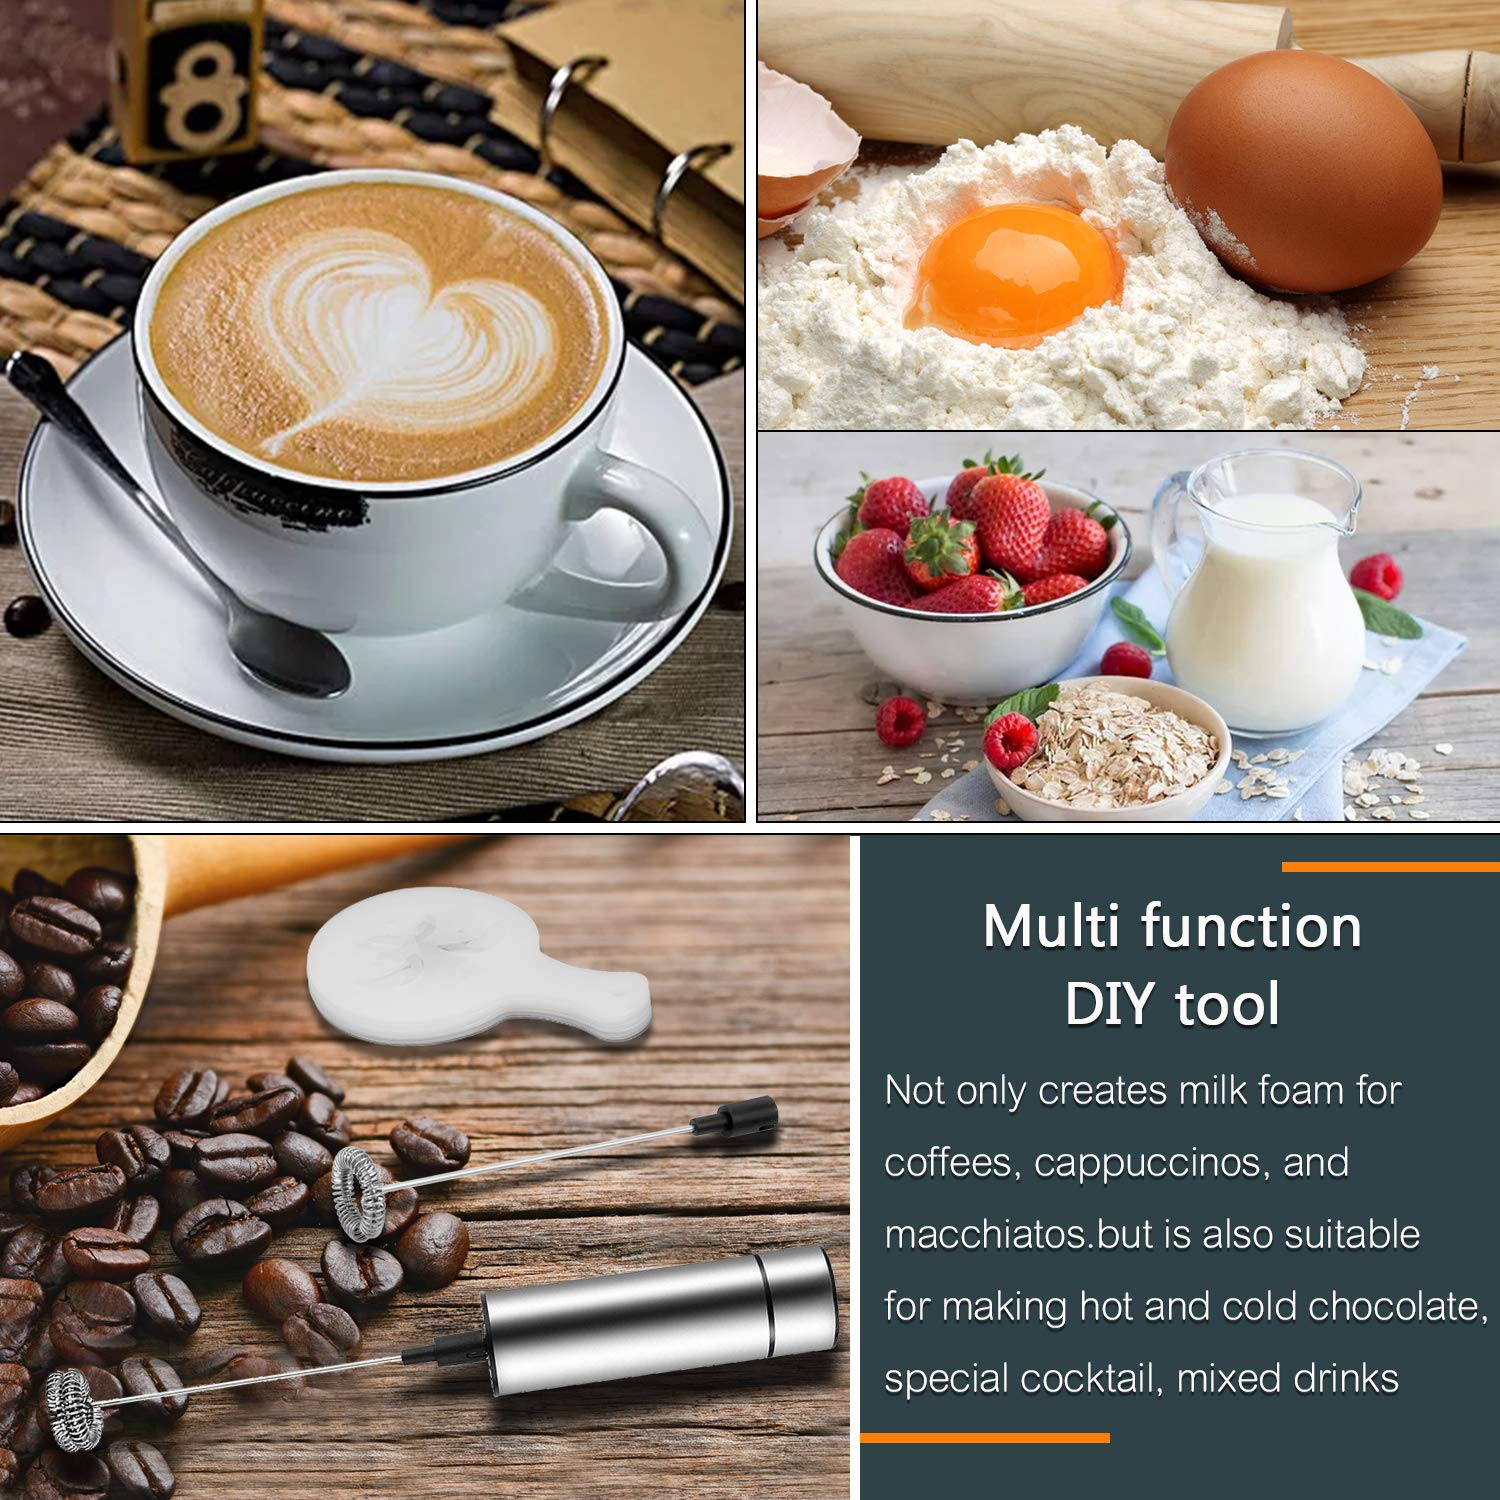 Portable Milk Frother, PEMOTech [3 in 1] Electric Milk Forther with Mix Spoon & 16 PCS Art Stencils, Handheld Frother Foam Maker with Double & Single Spring Whisk Head for Coffee, Cappuccino, Latte by PEMOTech (Image #4)